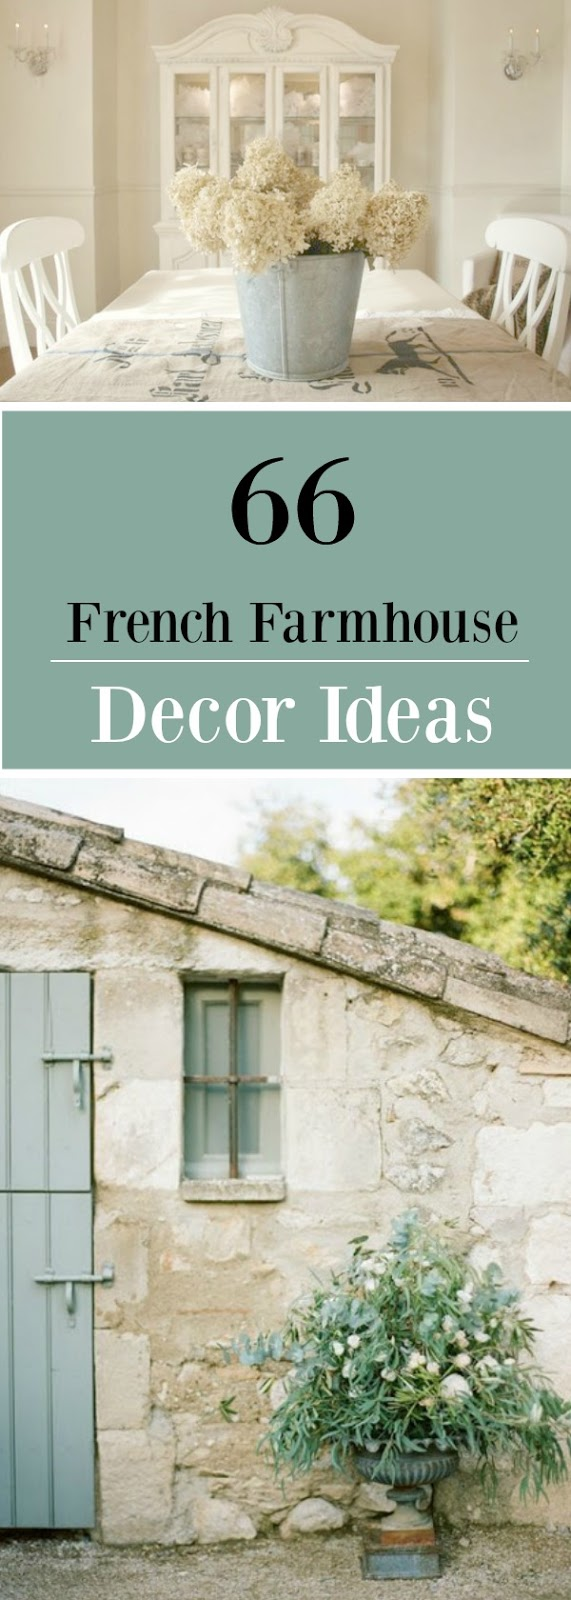 French Farmhouse Decor Style Decorating Ideas! #frenchfarmhouse #frenchcountry #decorinspiration